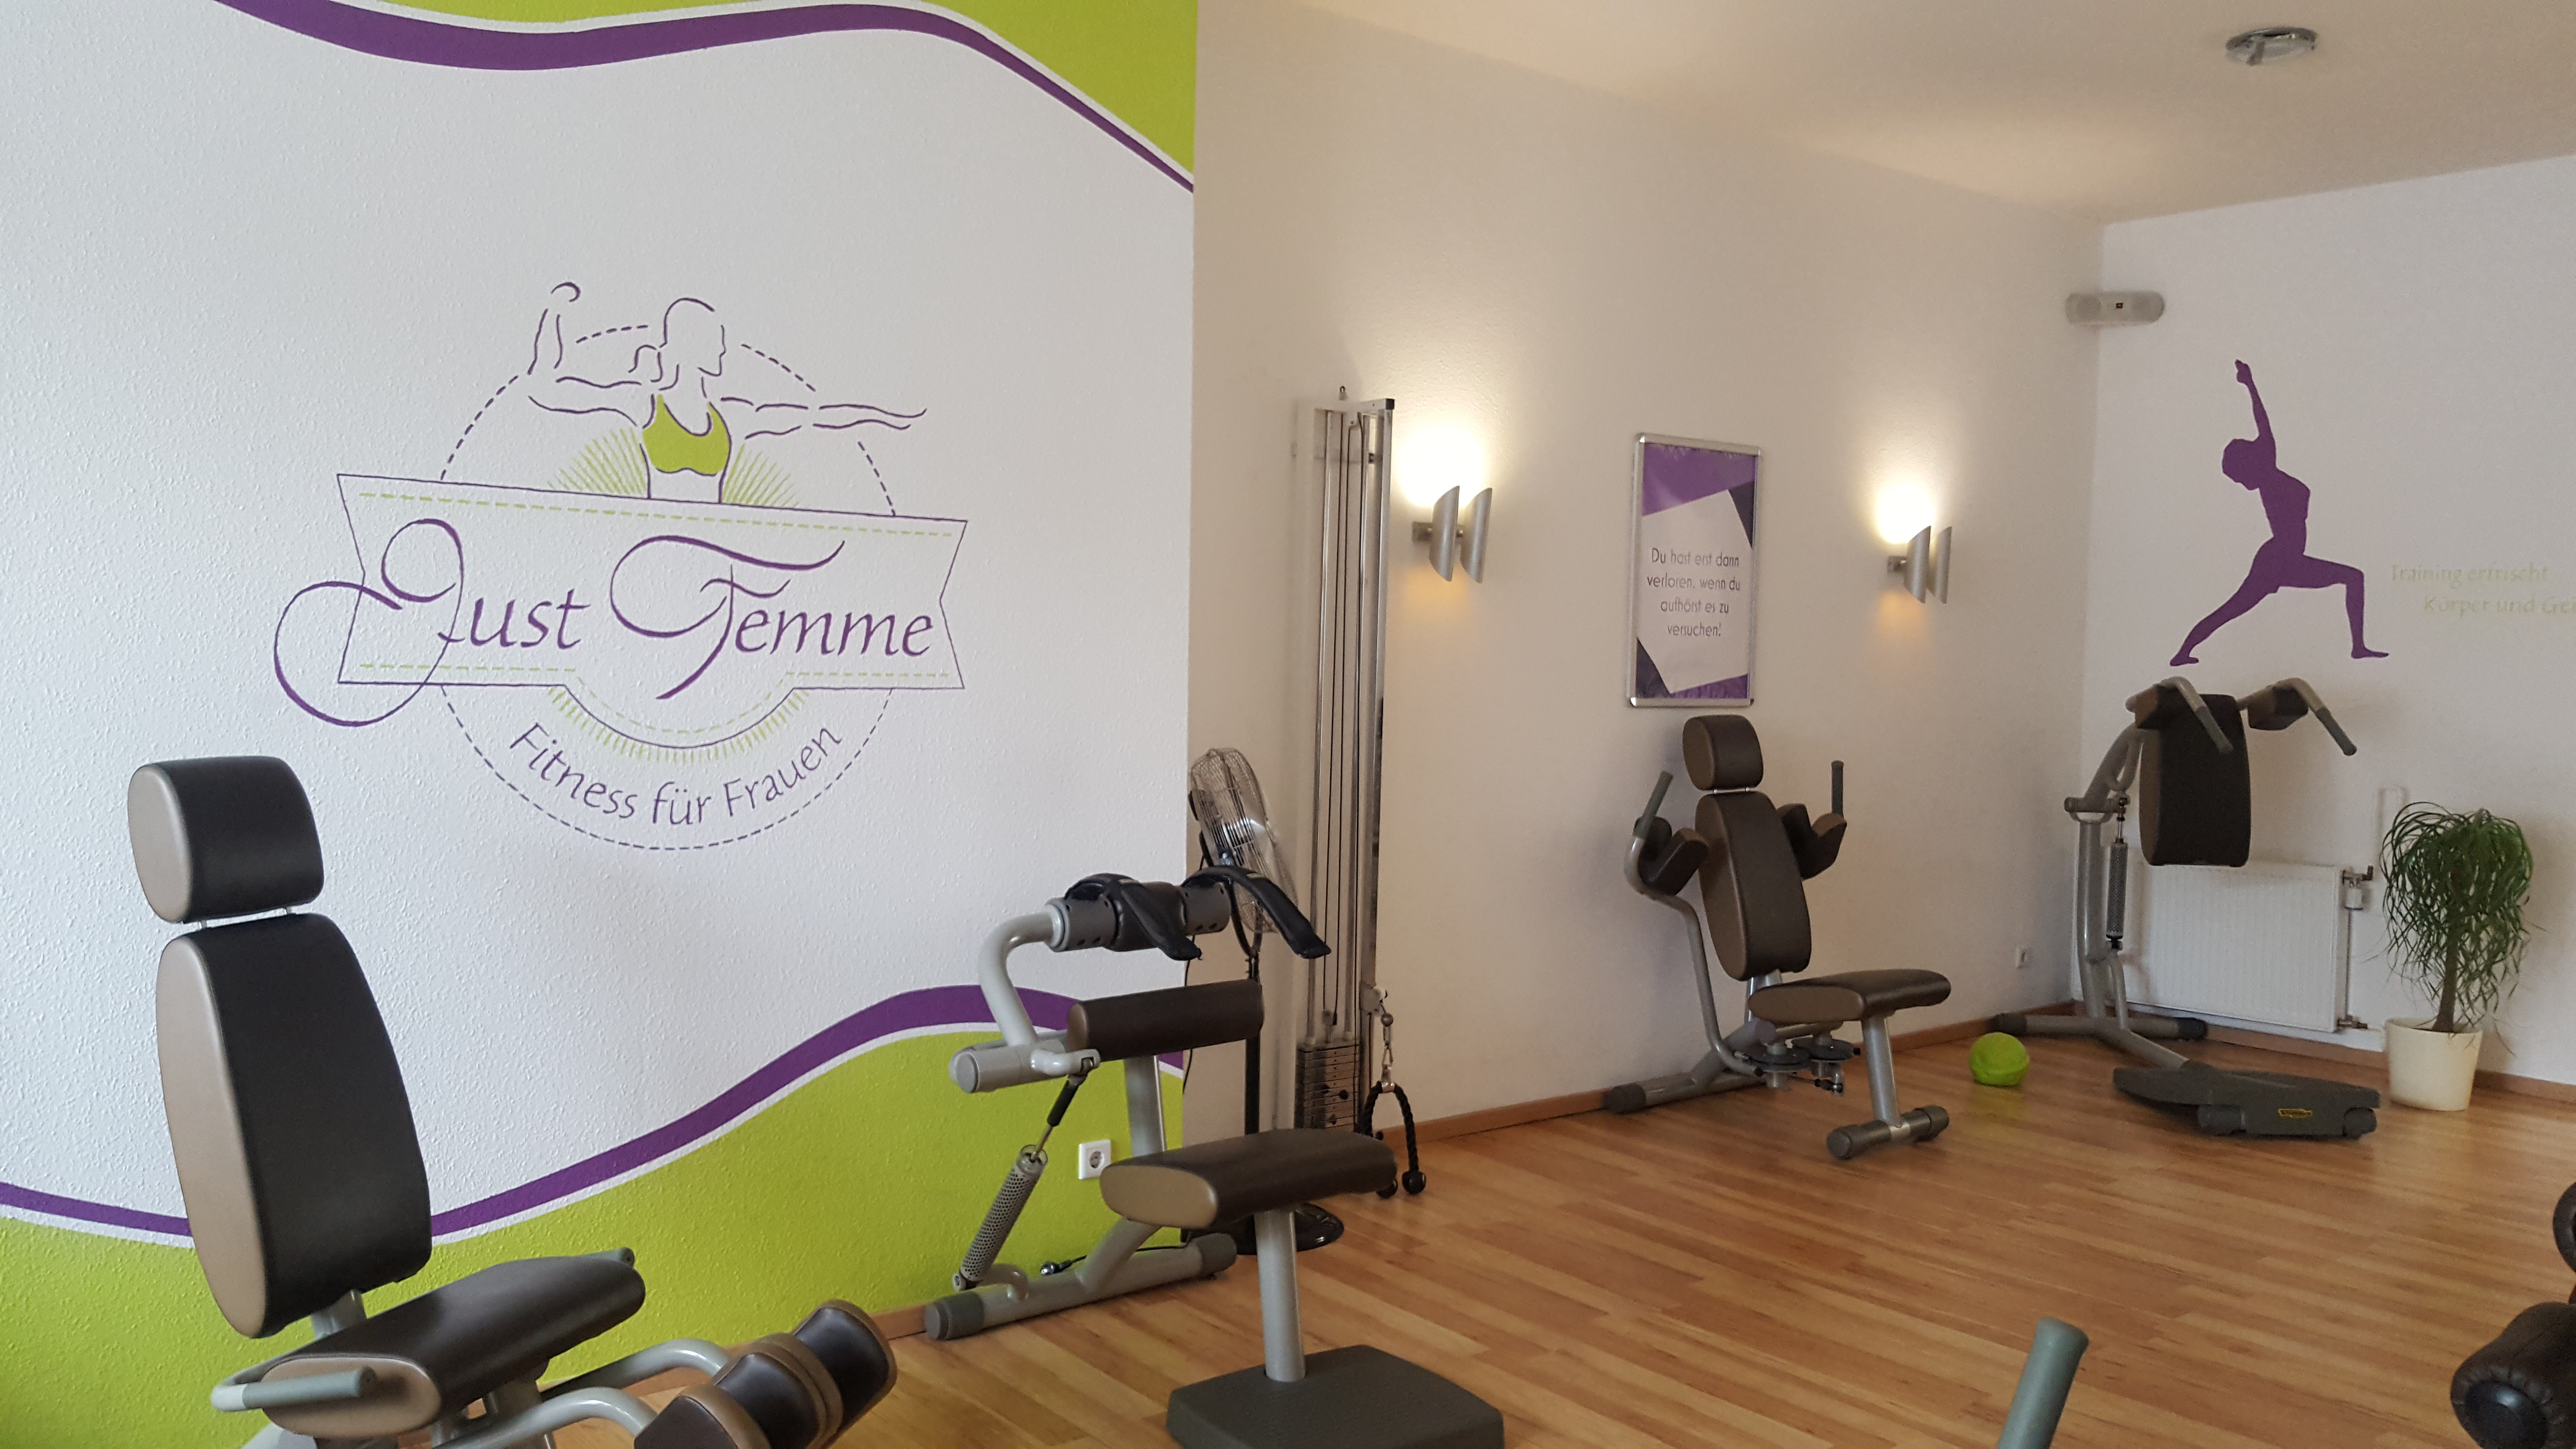 Just Femme - Fitness für Frauen - Rehabilitation & Prävention